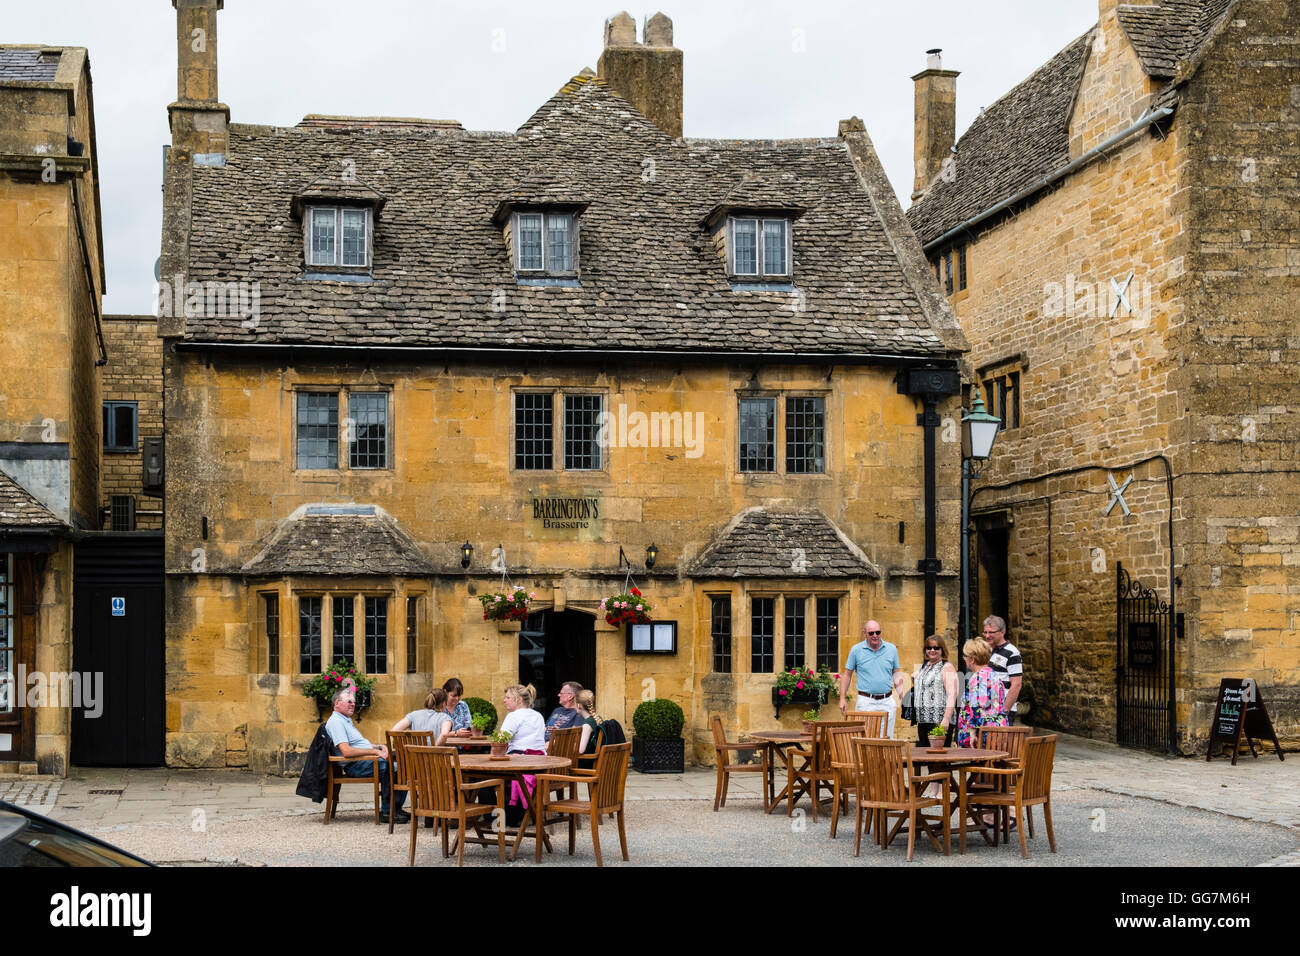 Barrington's Brasserie pub in village of Broadway in the Cotswolds Worcestershire, in England, United Kingdom - Stock Image